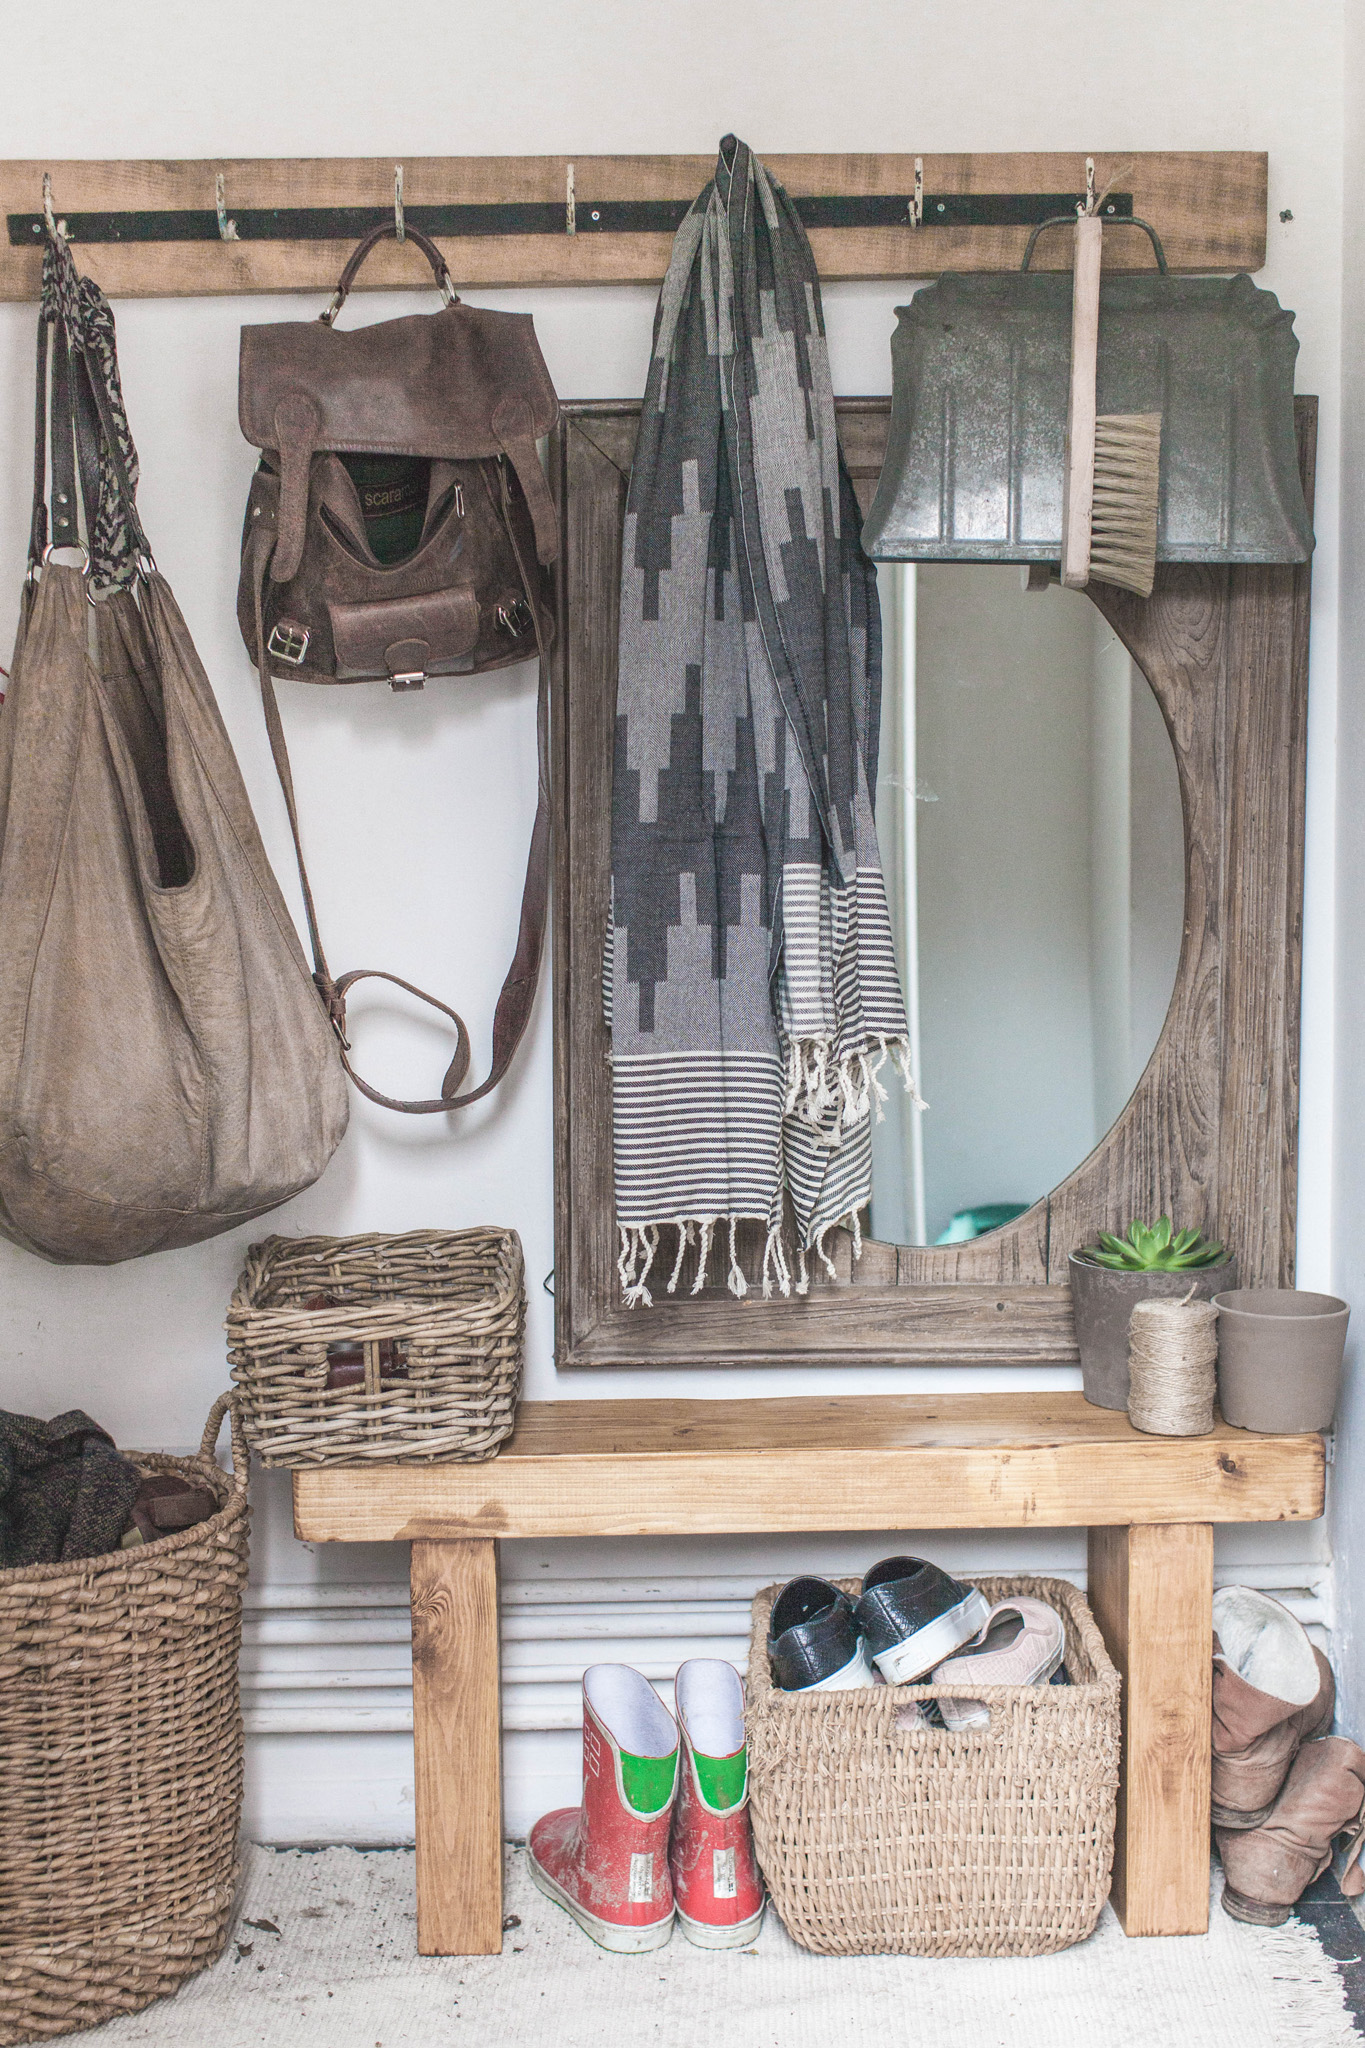 Ethical fouta or hamman towel by House of Rym from the Future Kept photographed by Emma Gutteridge for retrEAT - a Sussex food and lifestyle blog